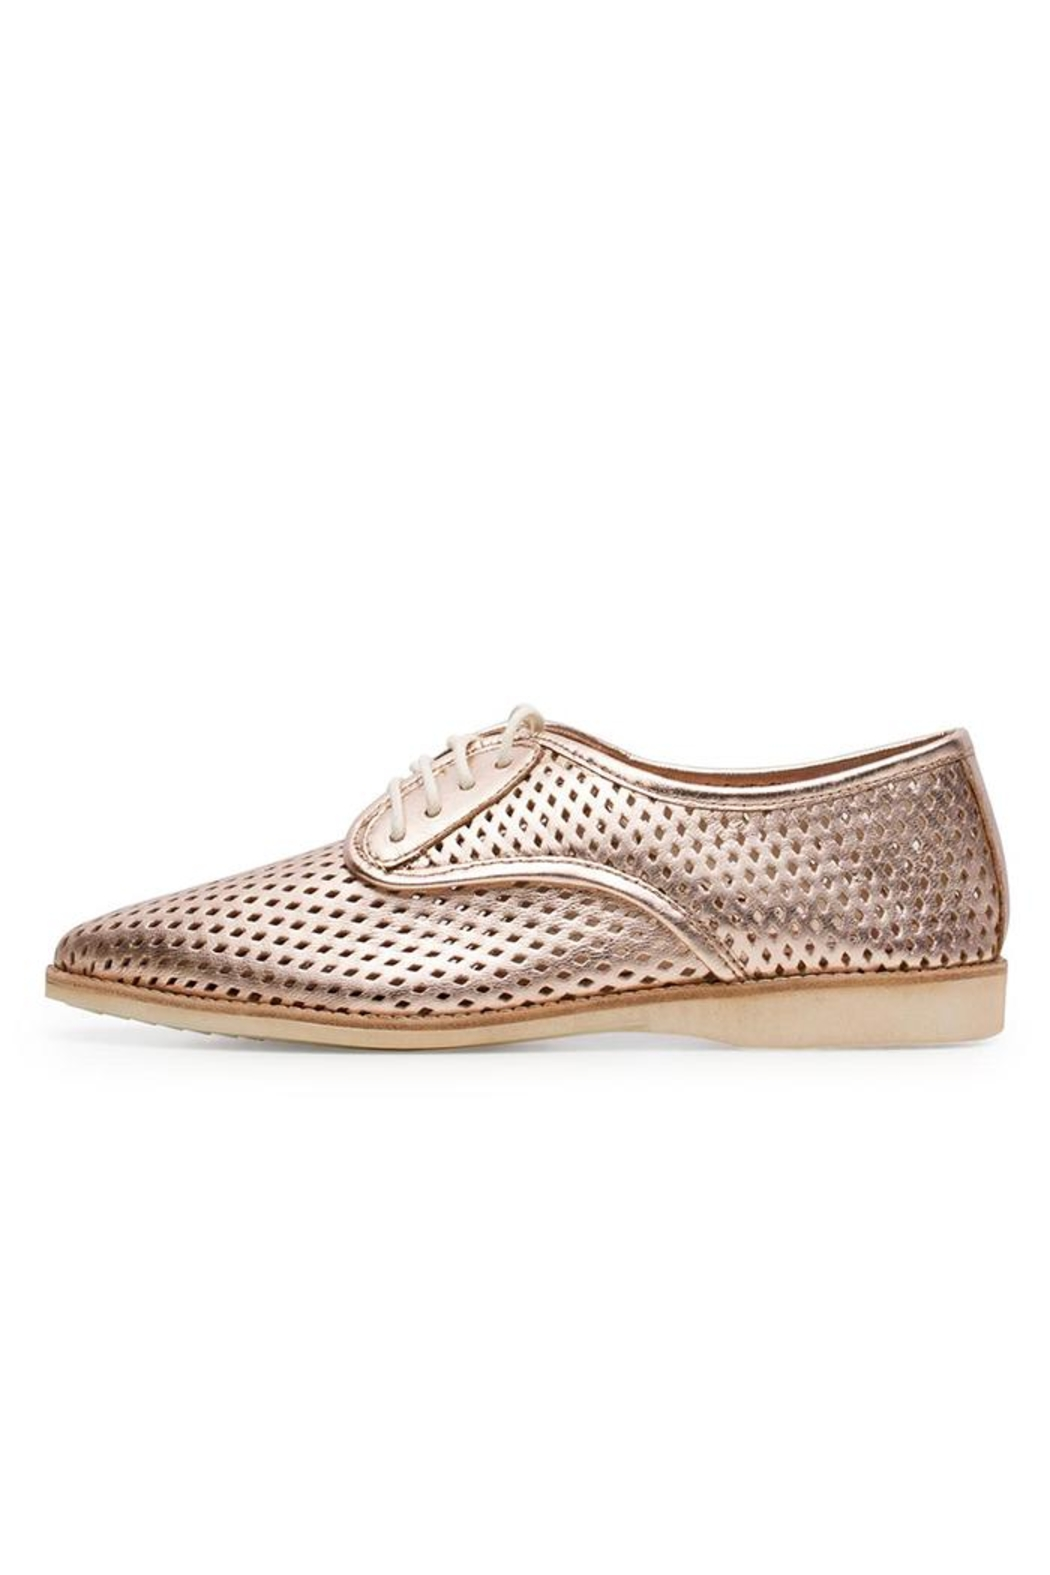 Rollie/Sidecut Rose Gold Oxfords - Front Cropped Image